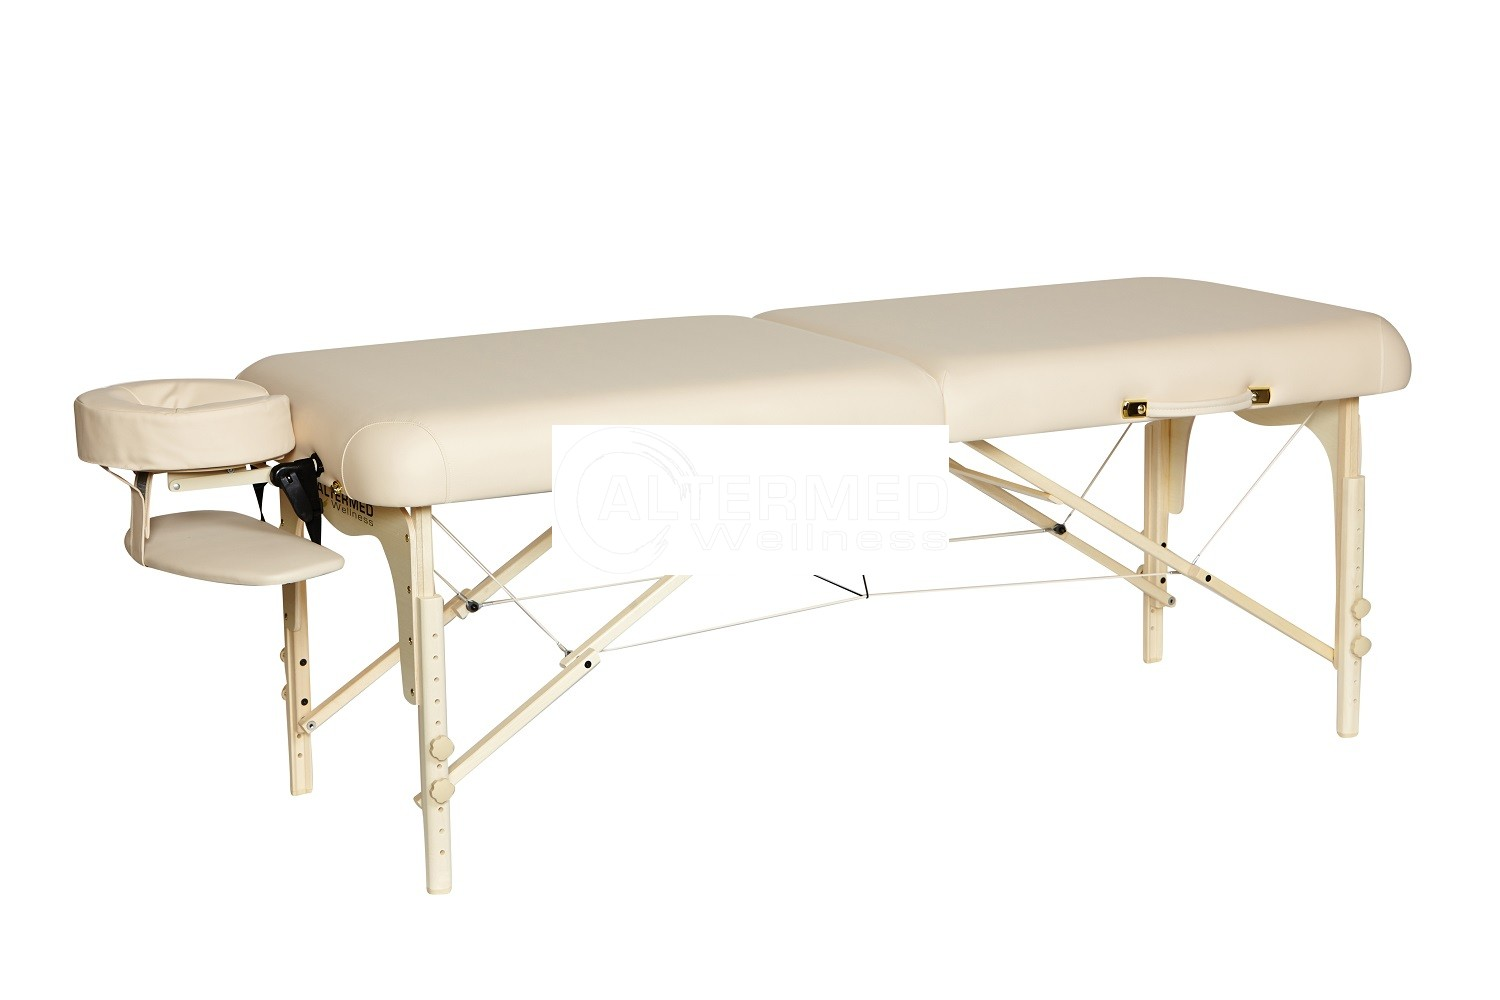 plinth in treatment london couch table hydraulic cushions sale p massage mats for north chairs